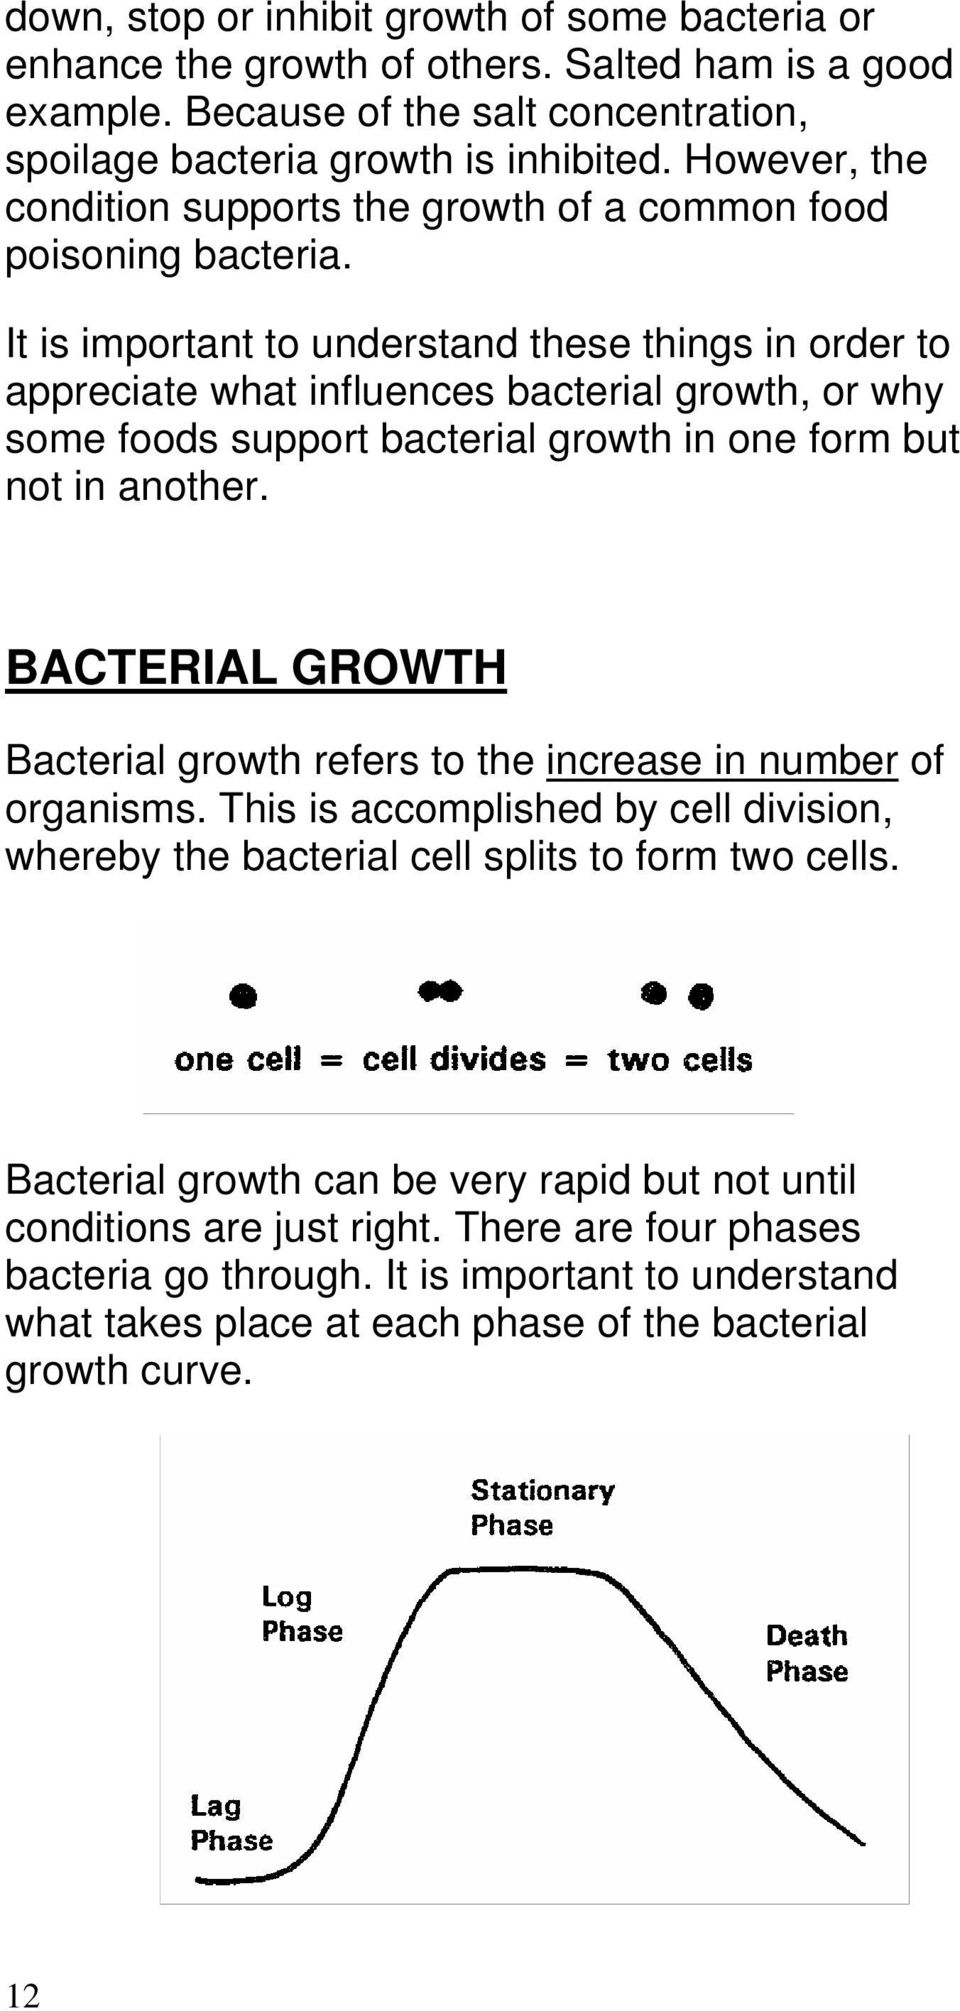 It is important to understand these things in order to appreciate what influences bacterial growth, or why some foods support bacterial growth in one form but not in another.